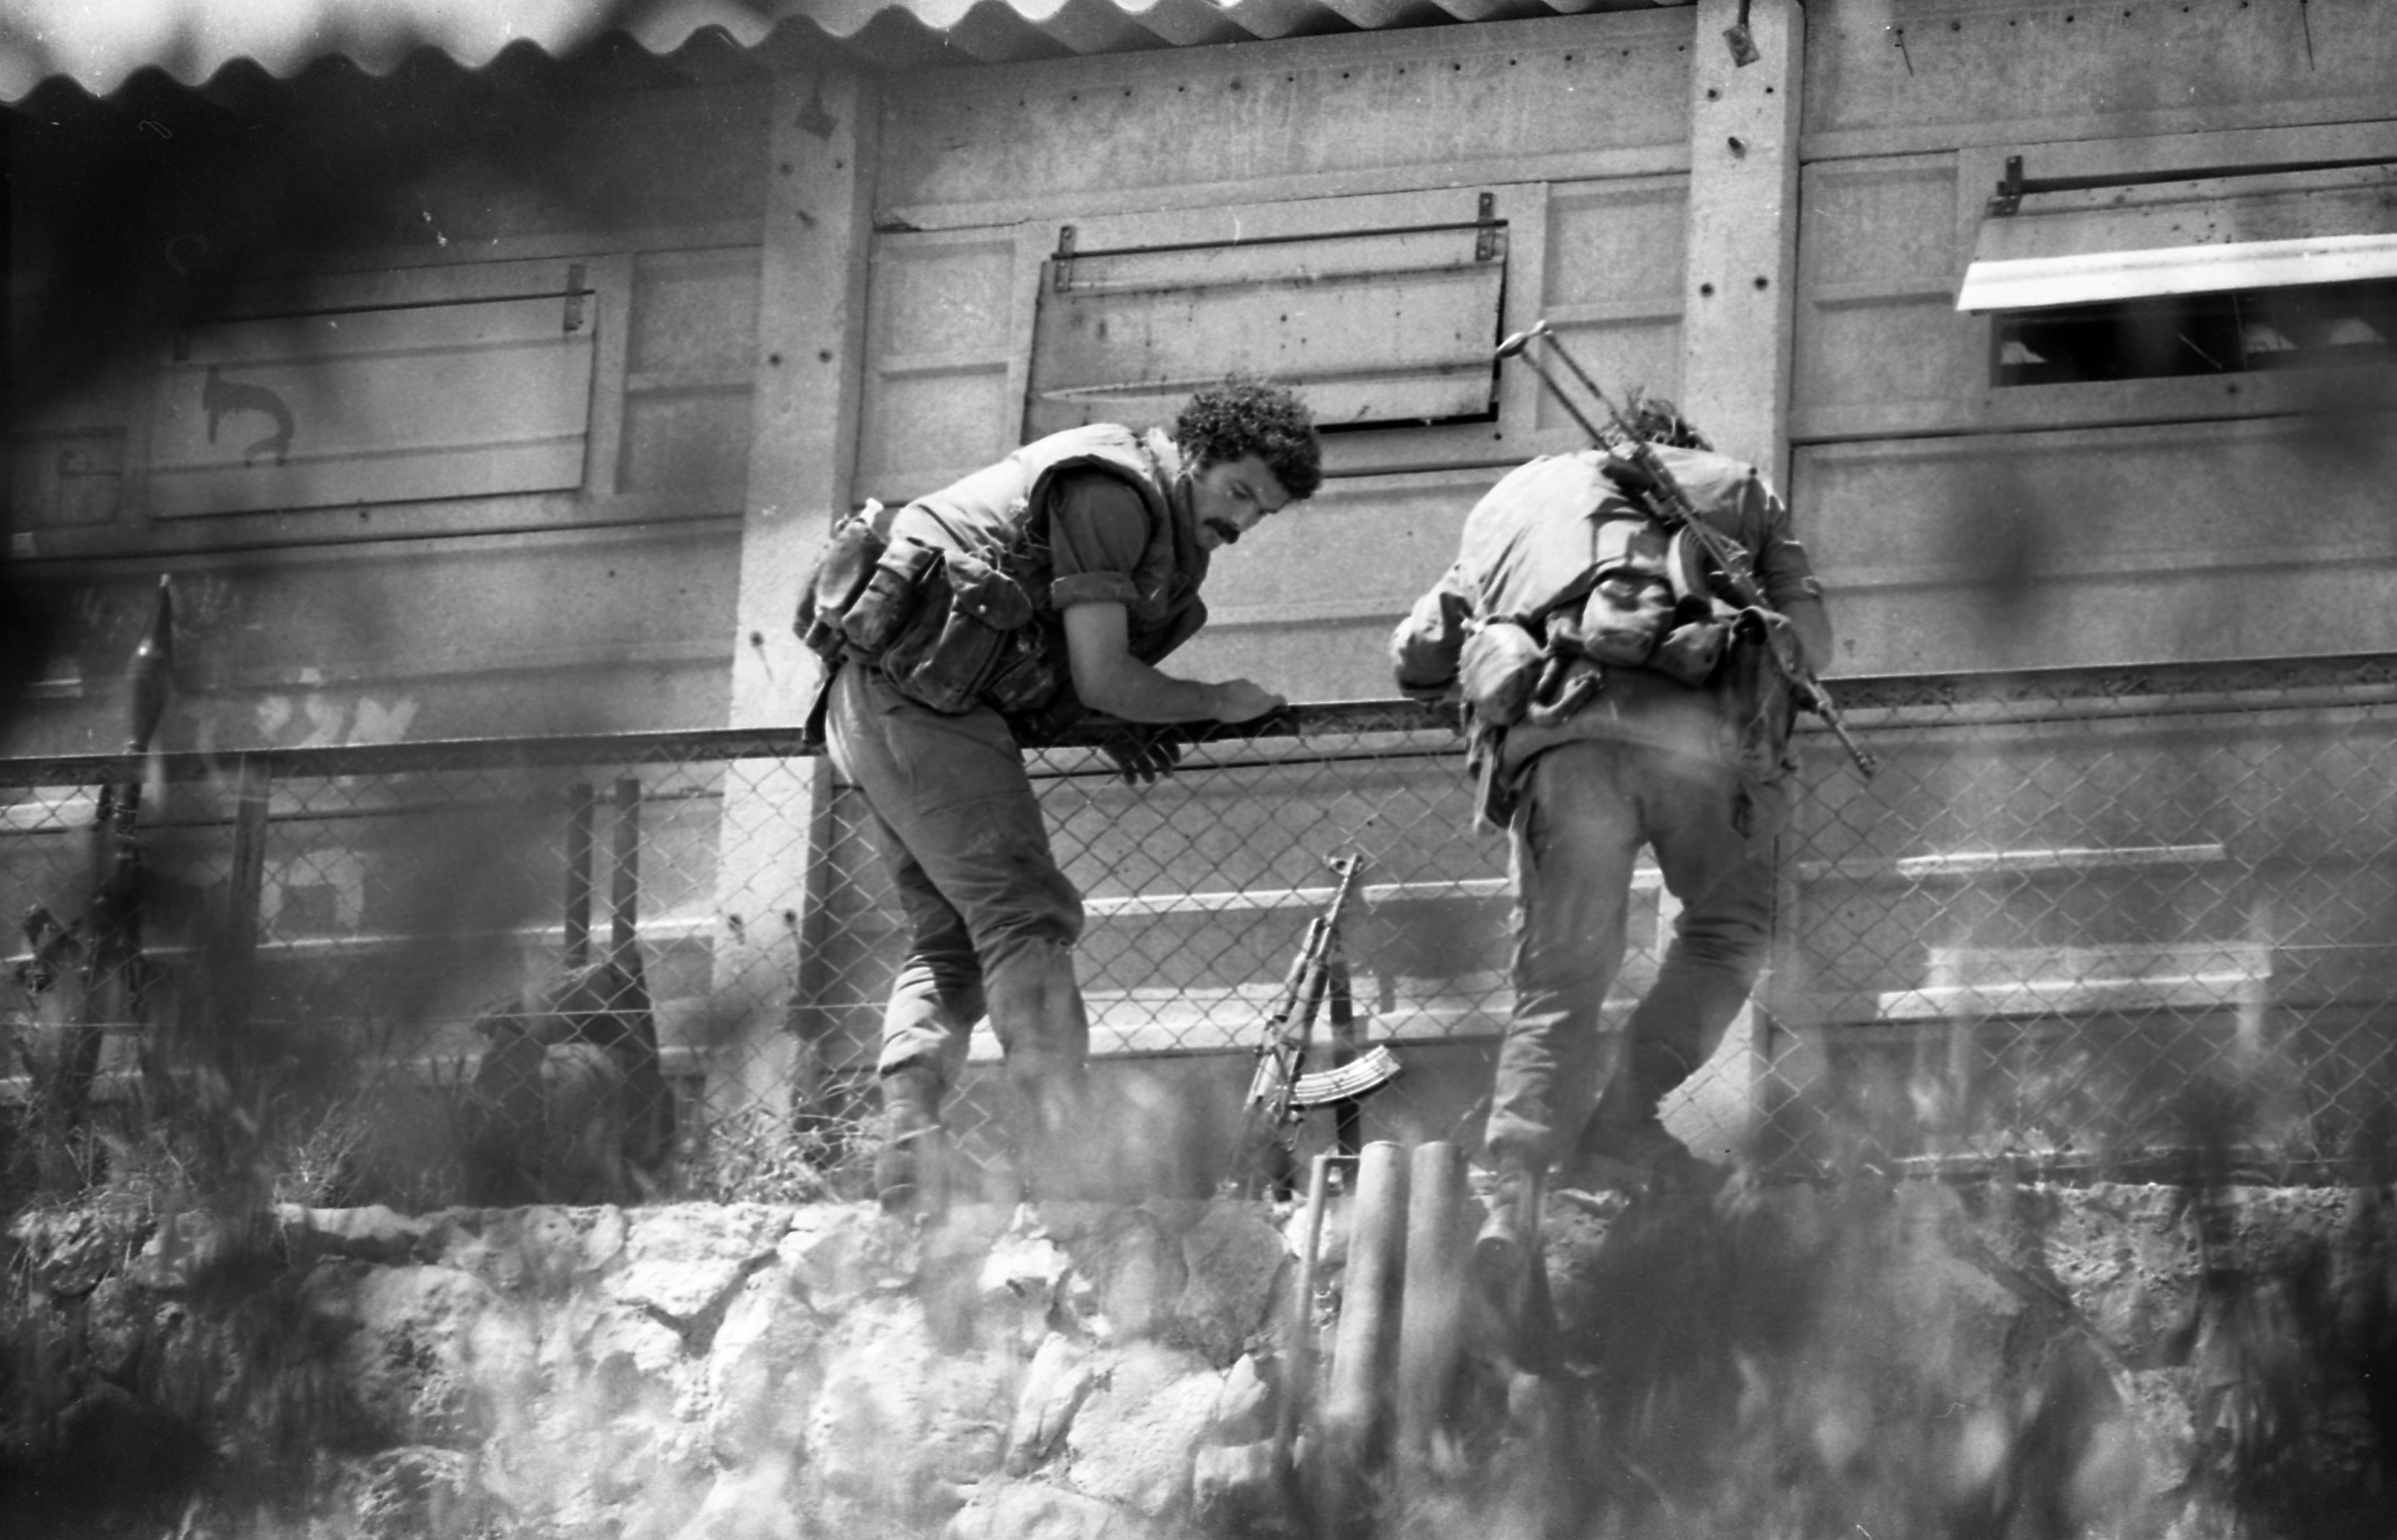 An Arab terrorist group attacked a school at Maalot killing several children and wounded thenth of them. IDF attacked the group killing the terrorists. Photo shows: IDF cotra attacking the Arab Terrorist group who sized the school at Maalot 1974/05/15 Copyright © IPPA 09239-006-38 Photo by IPPA Staff